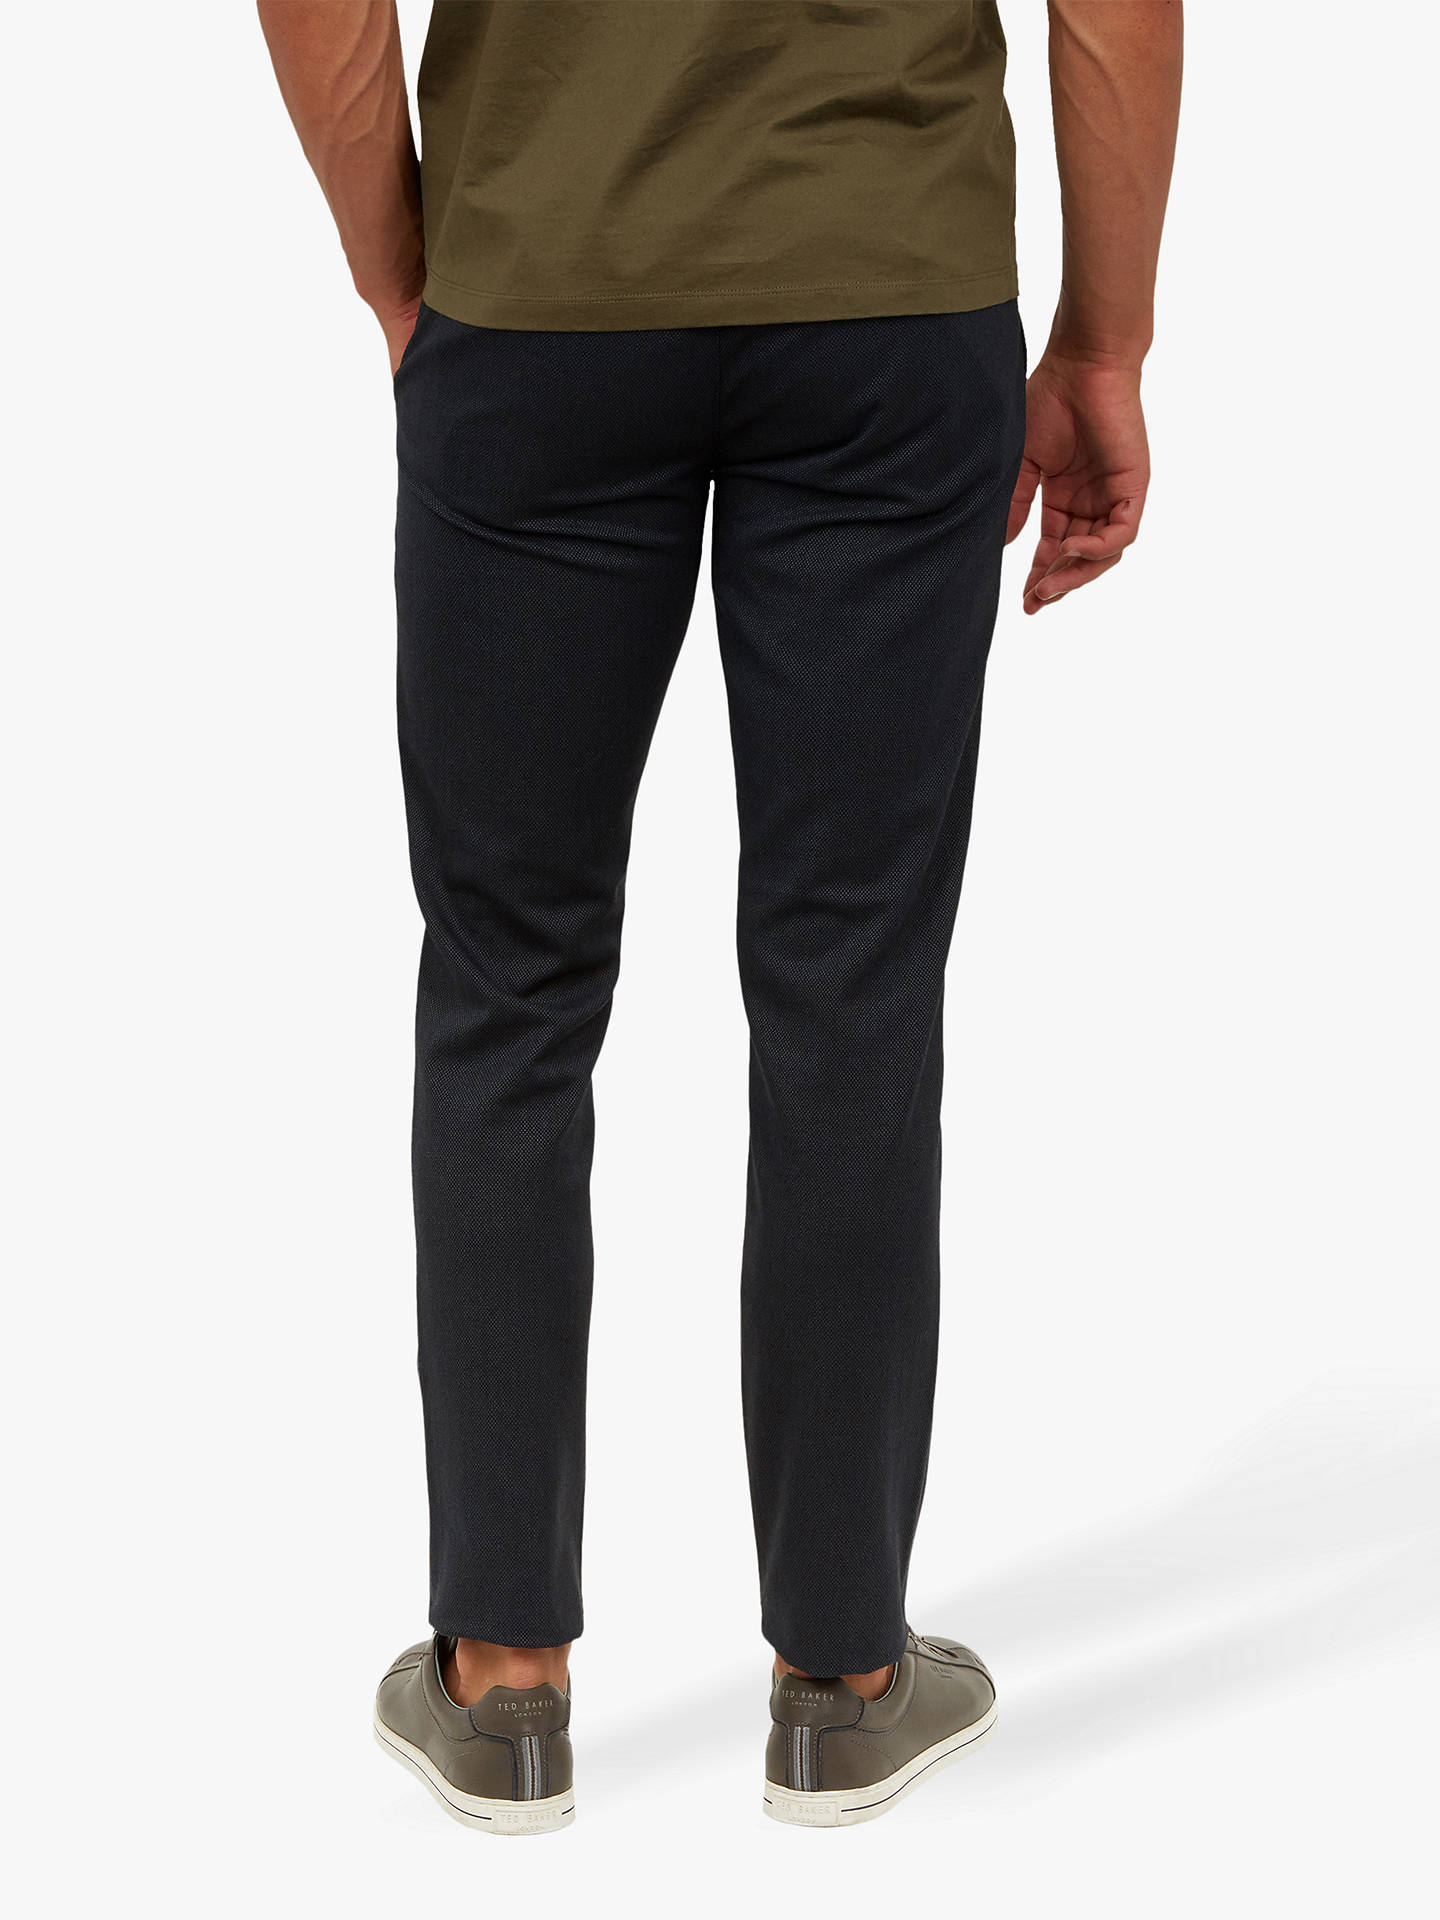 BuyTed Baker Willham Slim Fit Textured Trousers, Navy, 30R Online at johnlewis.com